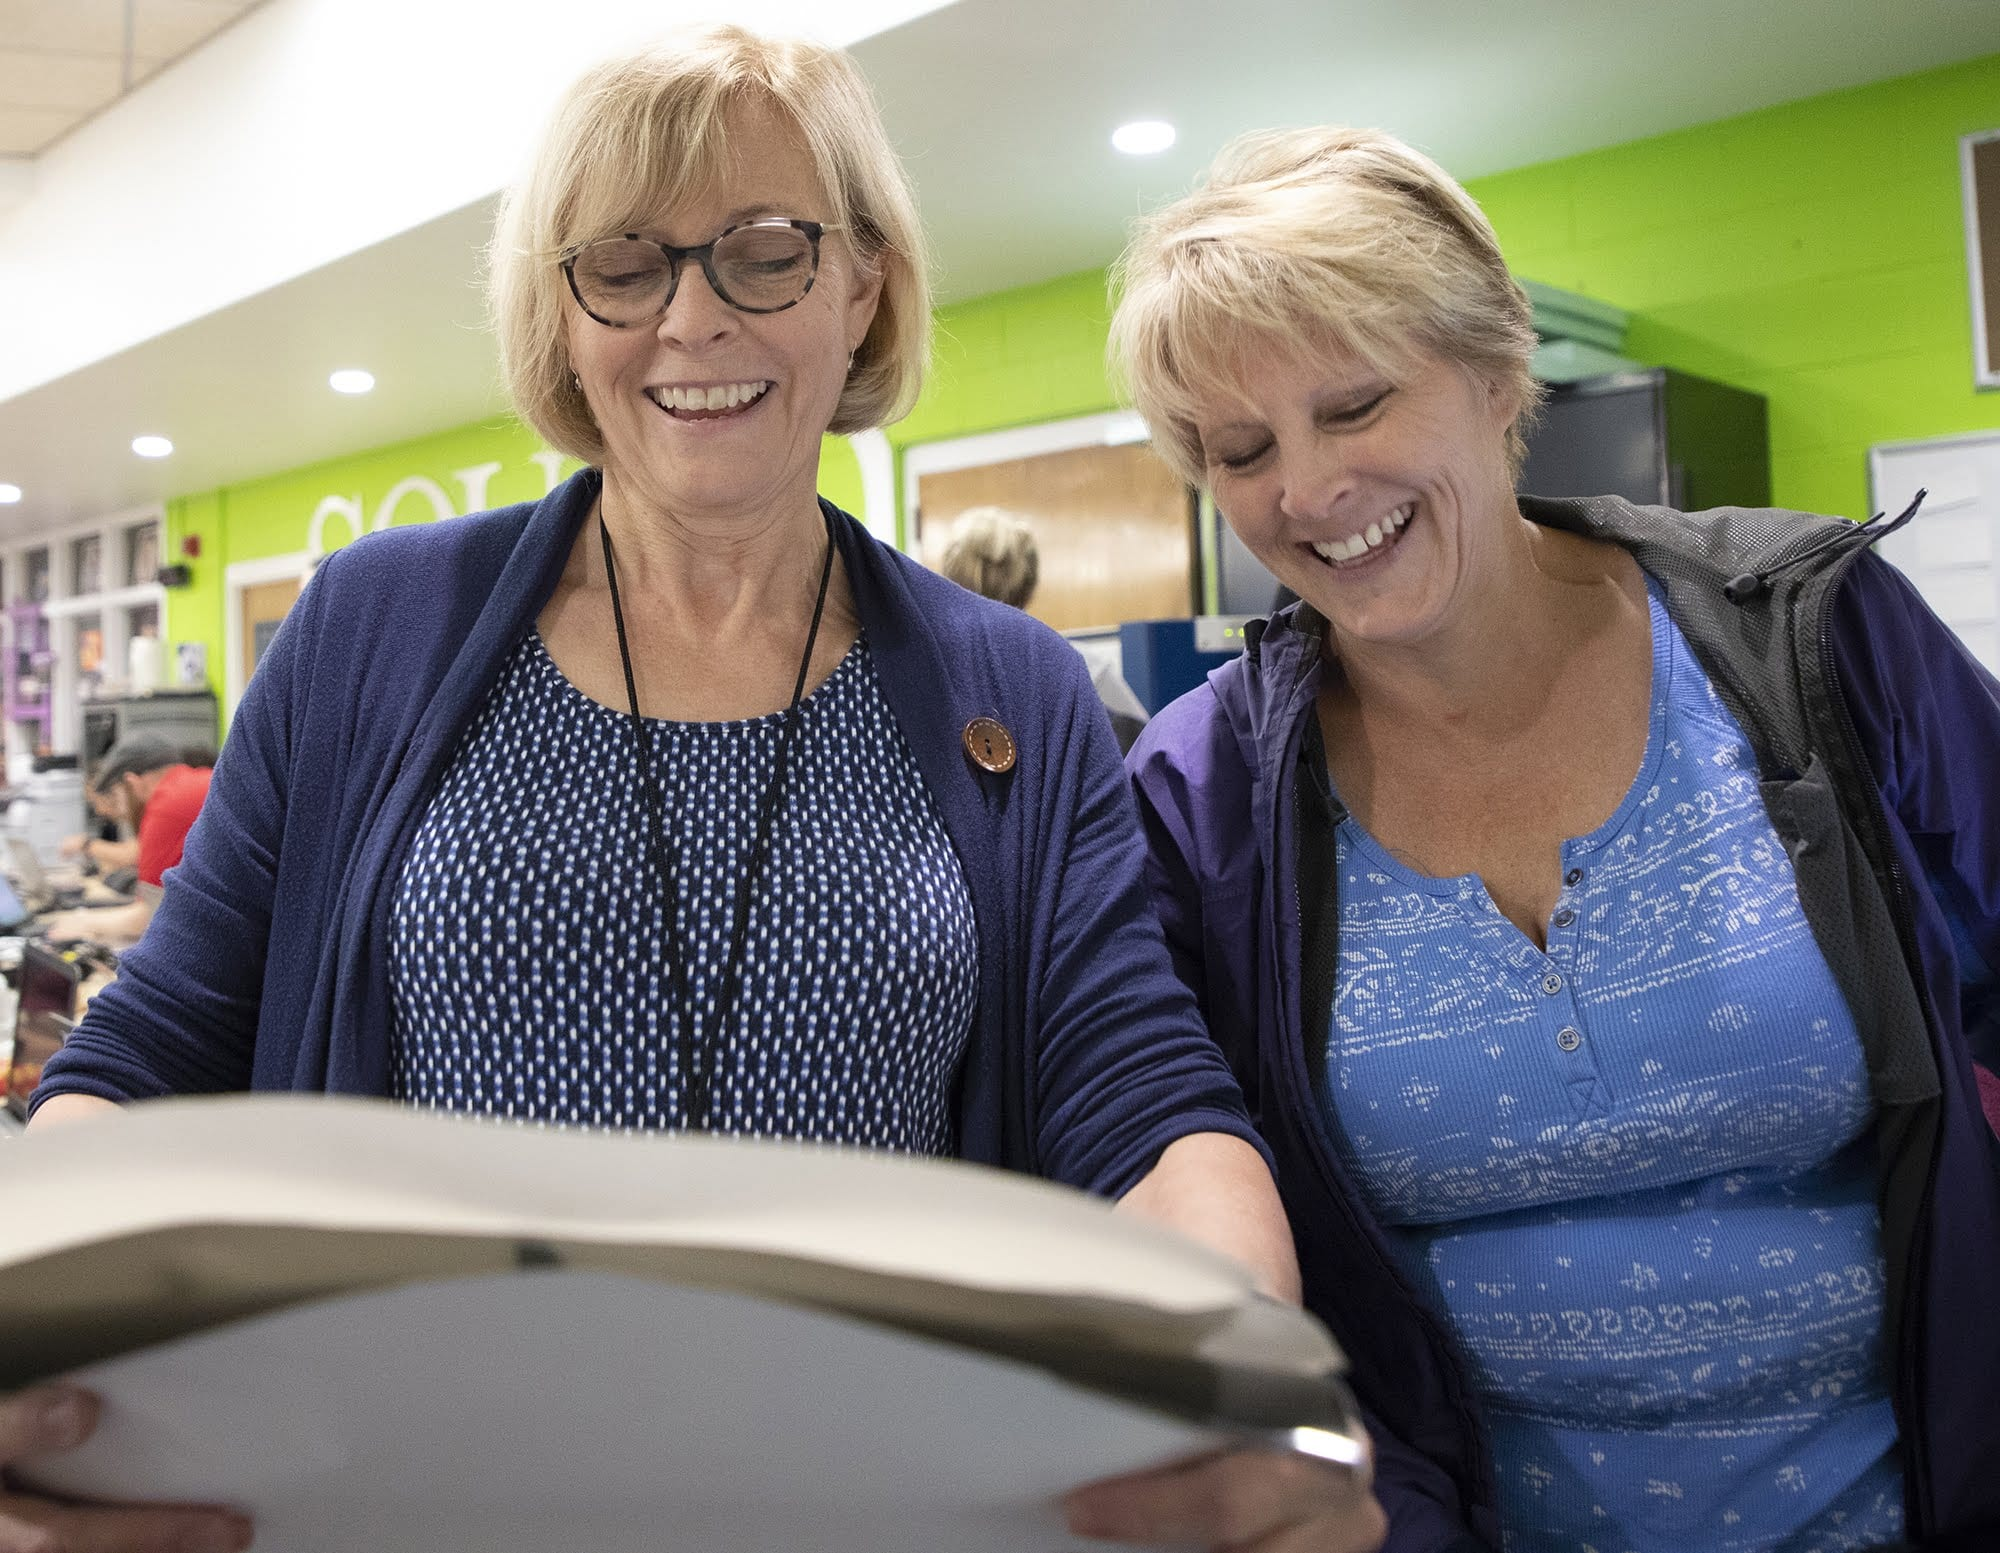 Sally Kunkel, a teacher at the Clairton School District, laughs with her sister, Wendy Pasternack, also a teacher at the Elizabeth Forward School District, after feeding paper into the vinyl cutter at the FAB Institute at Elizabeth Forward High School on June 21.